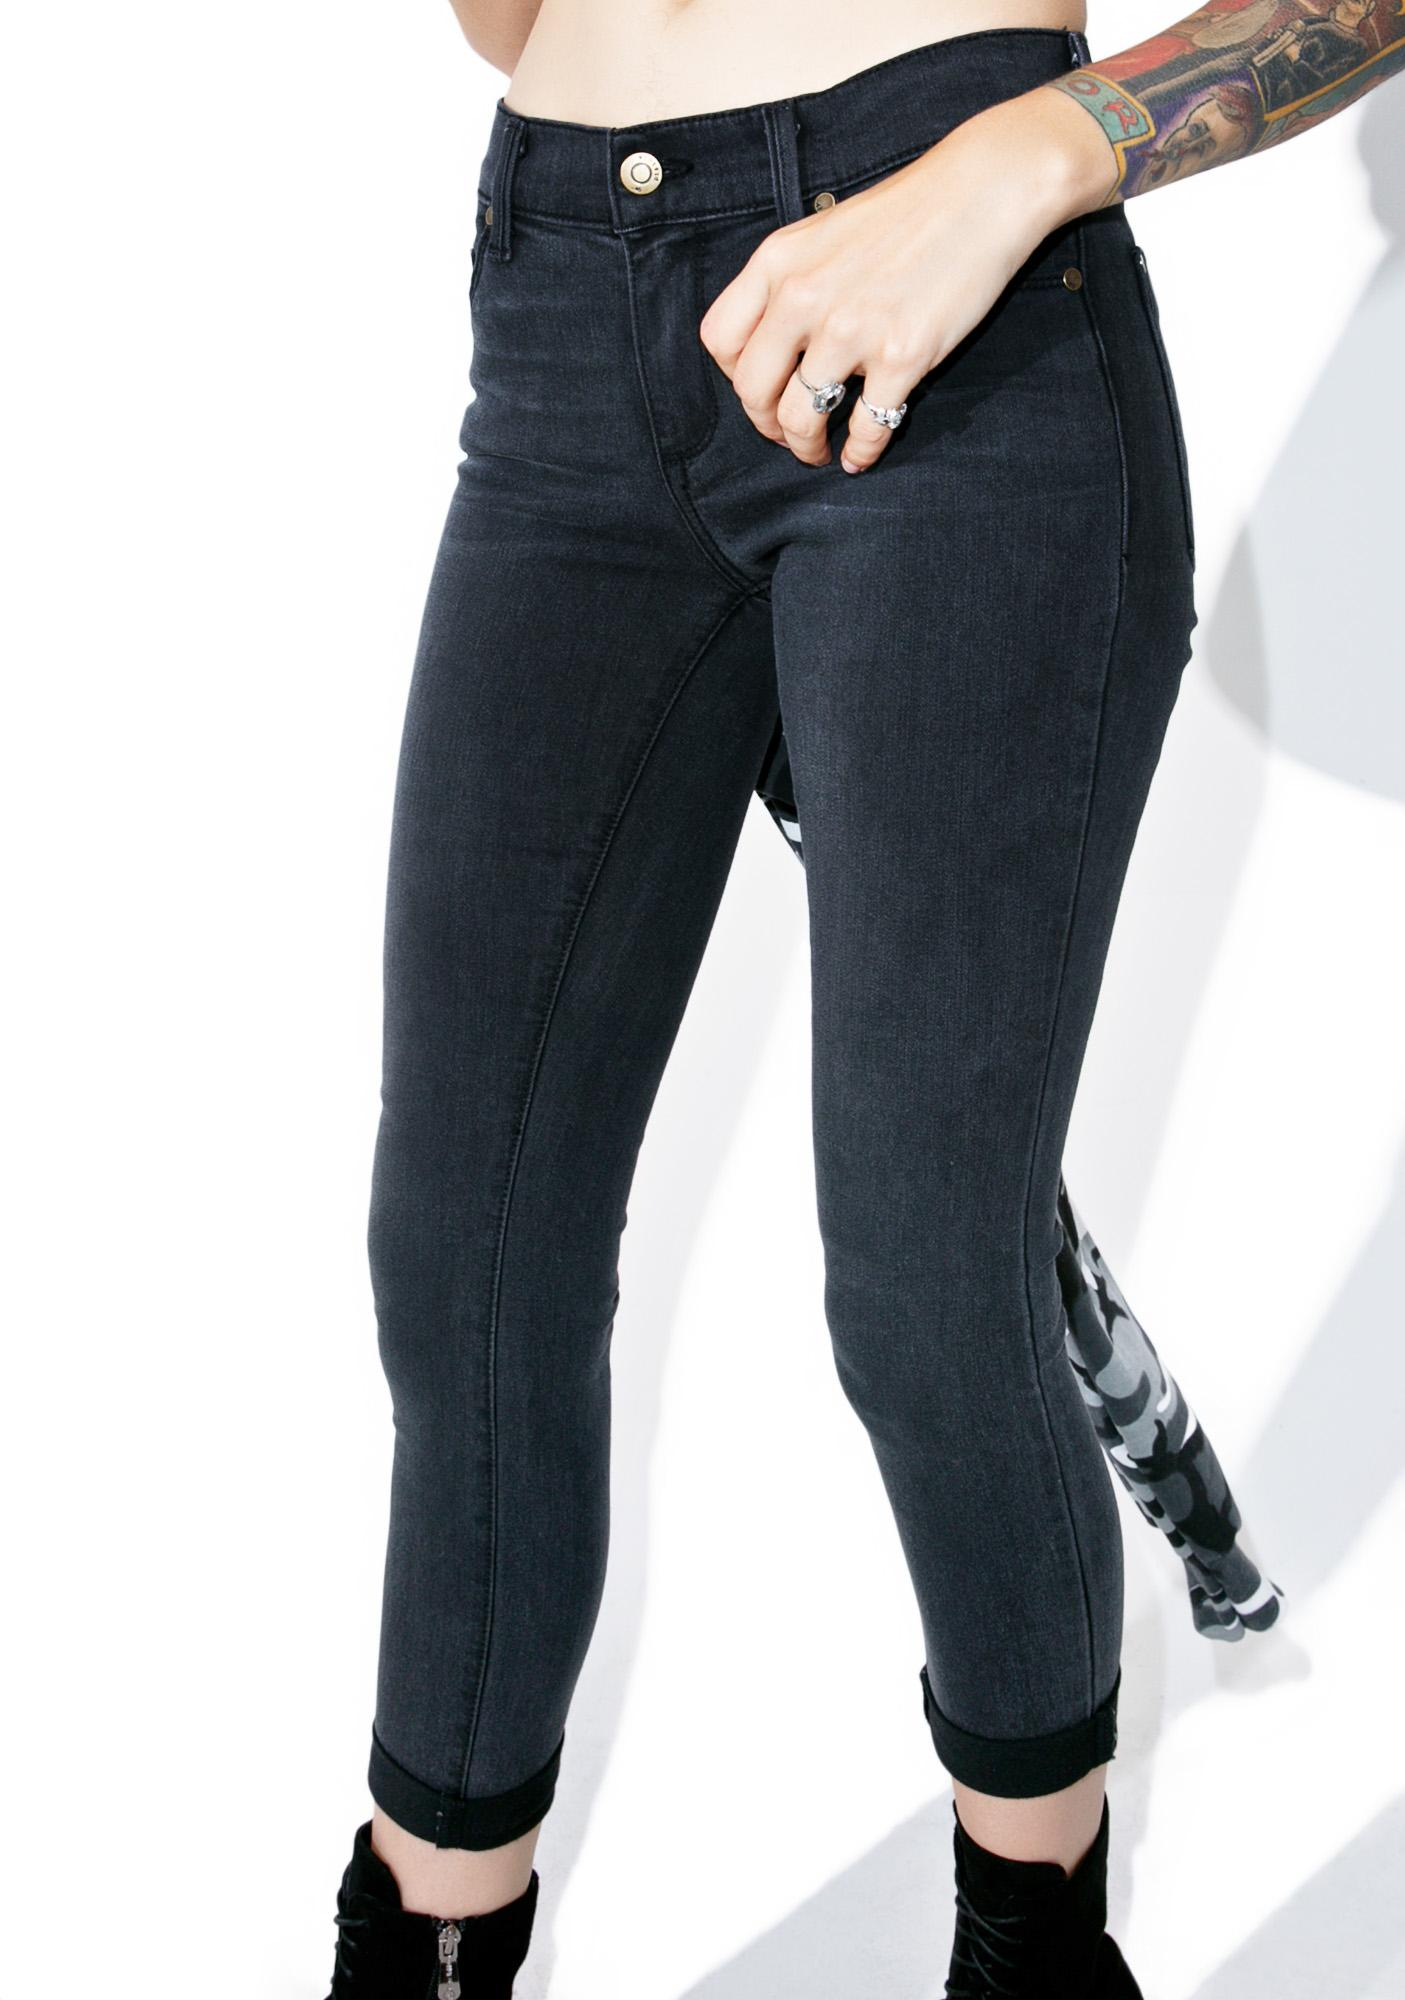 Eight Ball Cuff Jeans